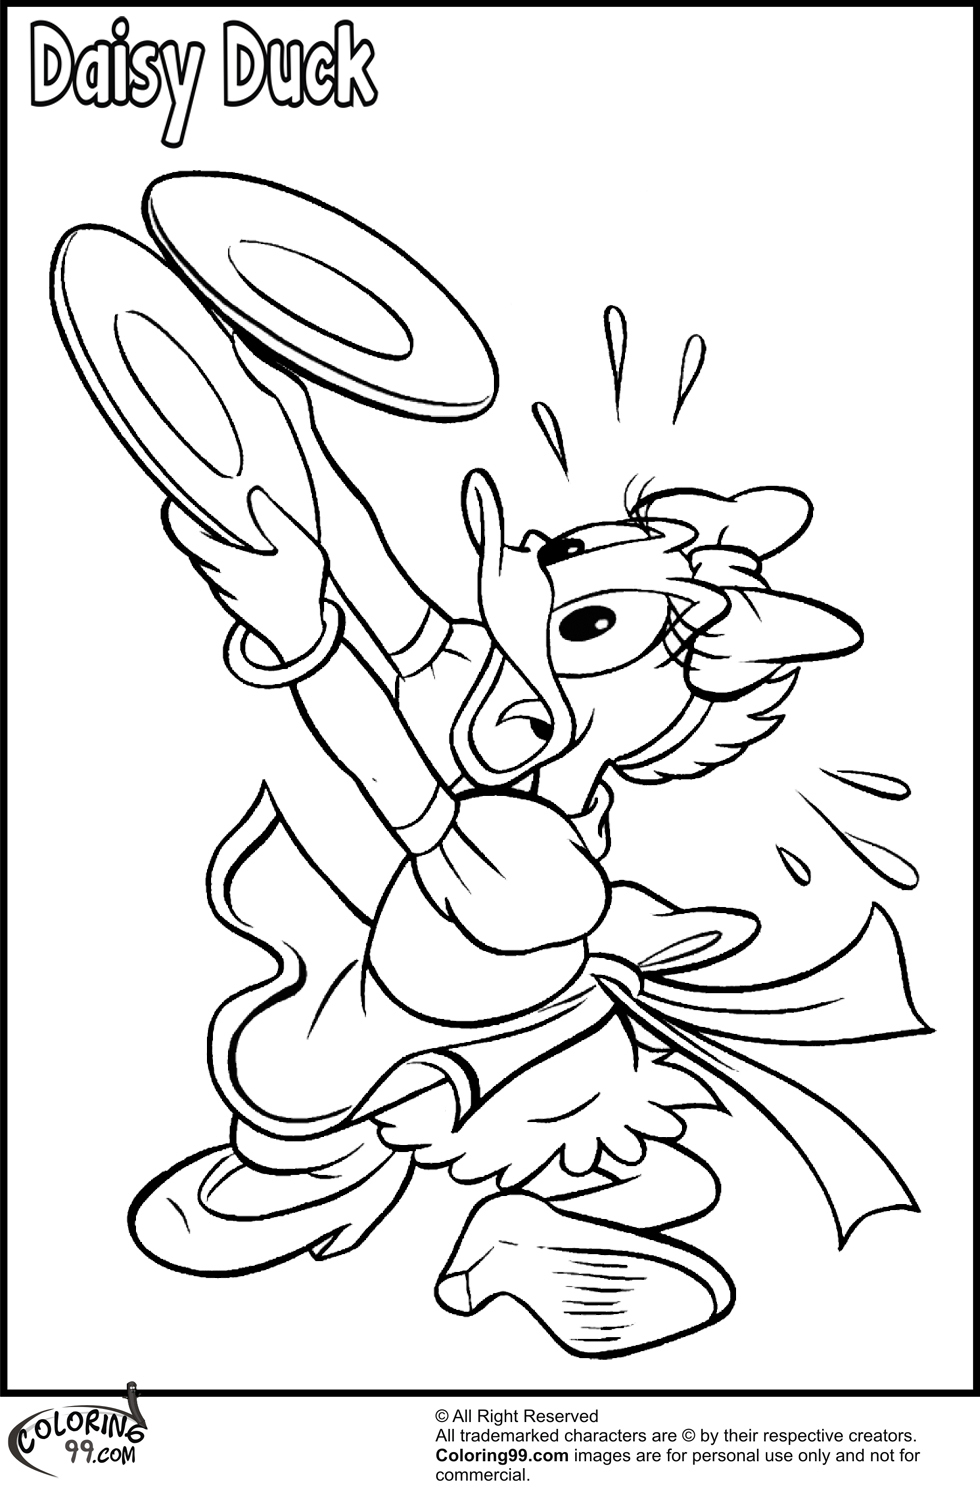 Daisy Duck Coloring Pages | Team colors